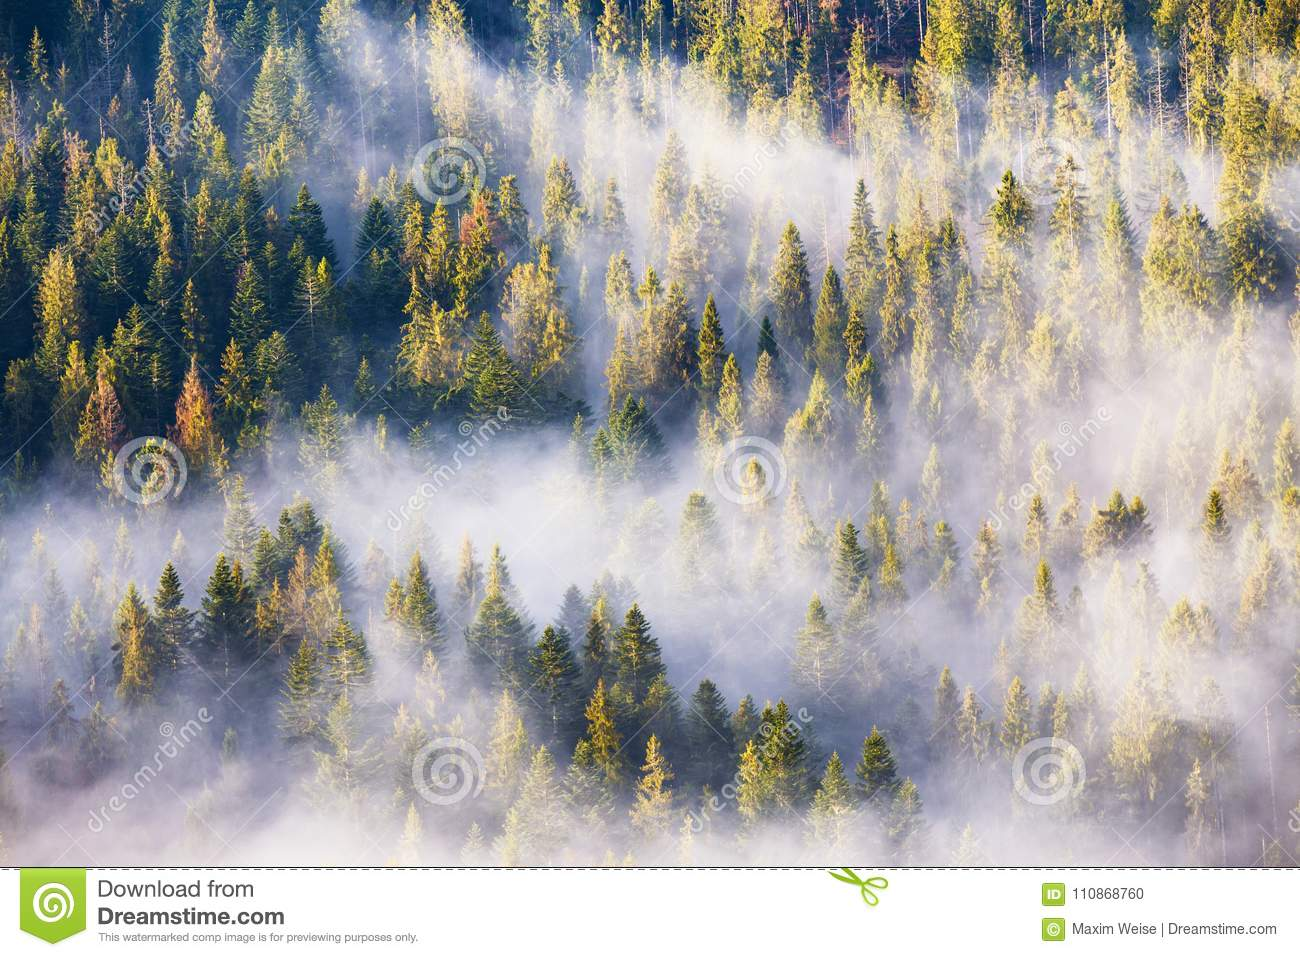 Morning fog in spruce and fir forest in warm sunlight